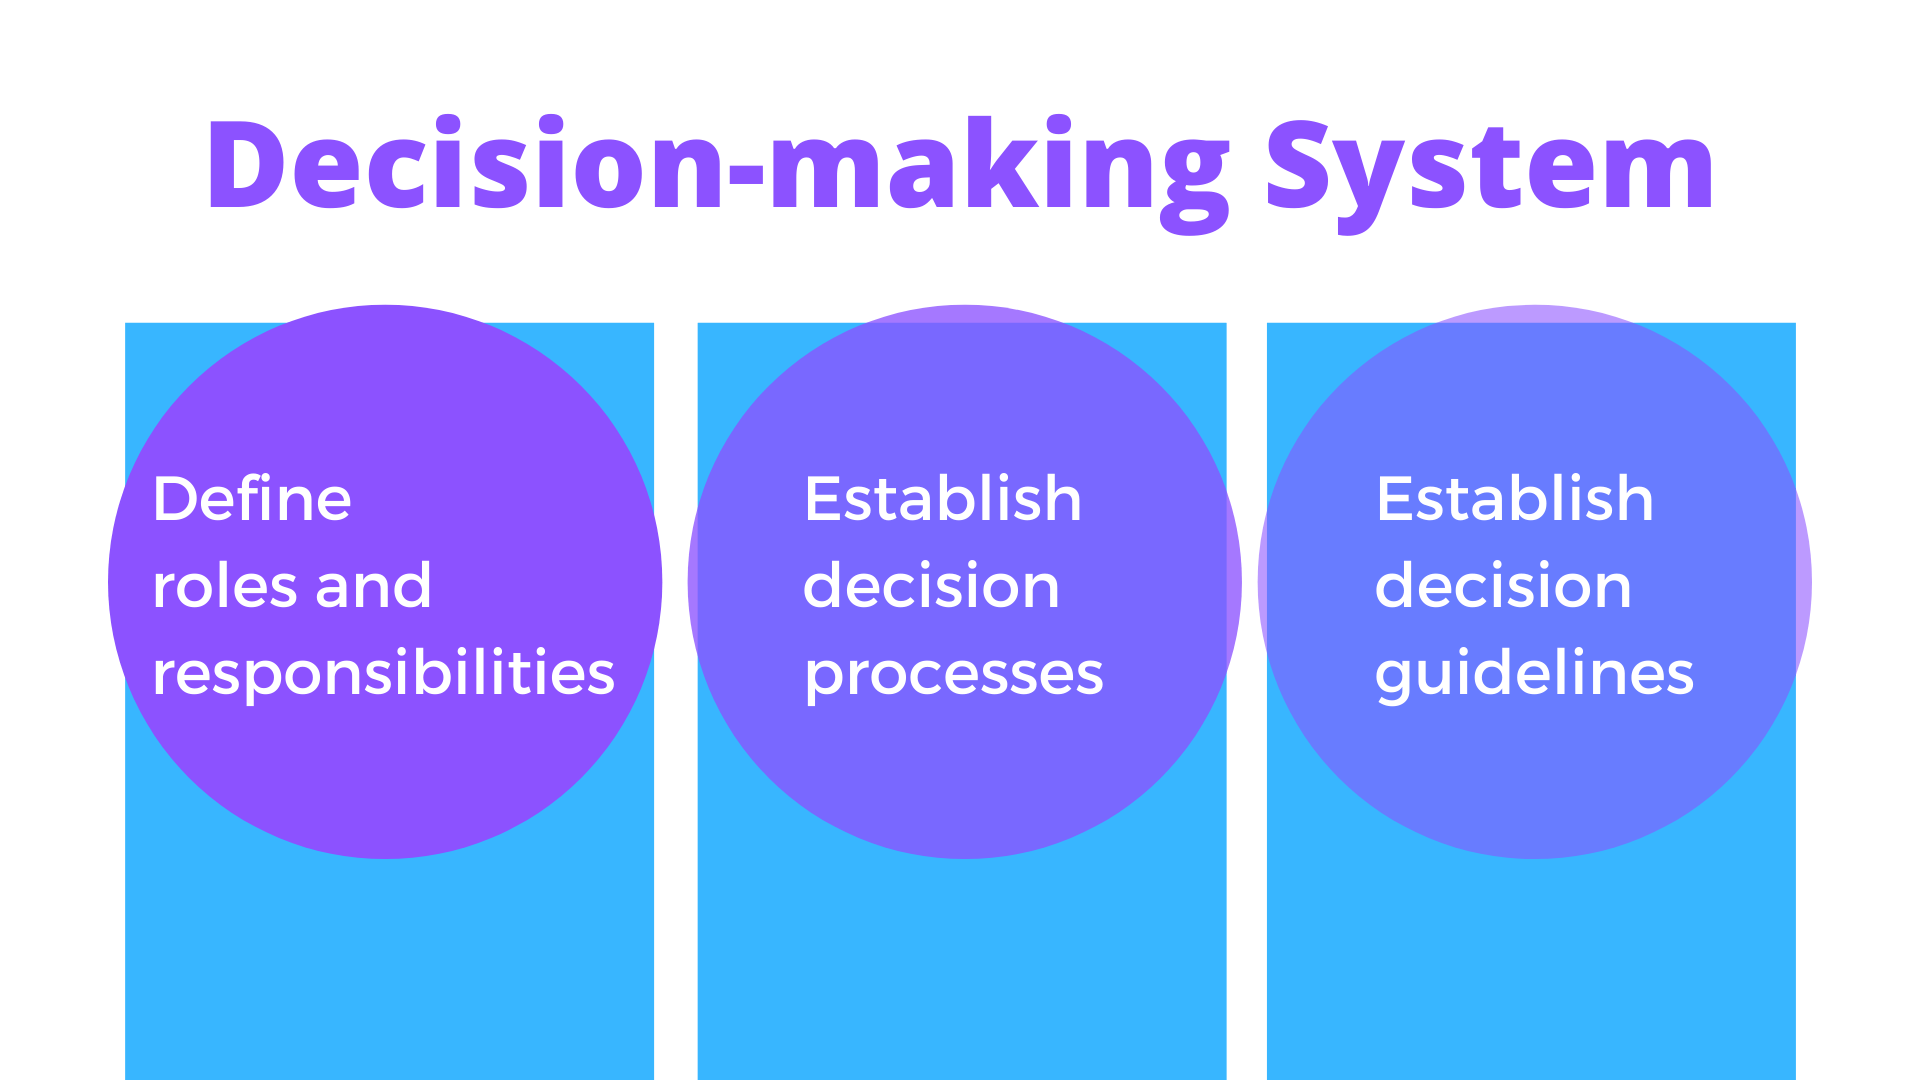 decision-making system